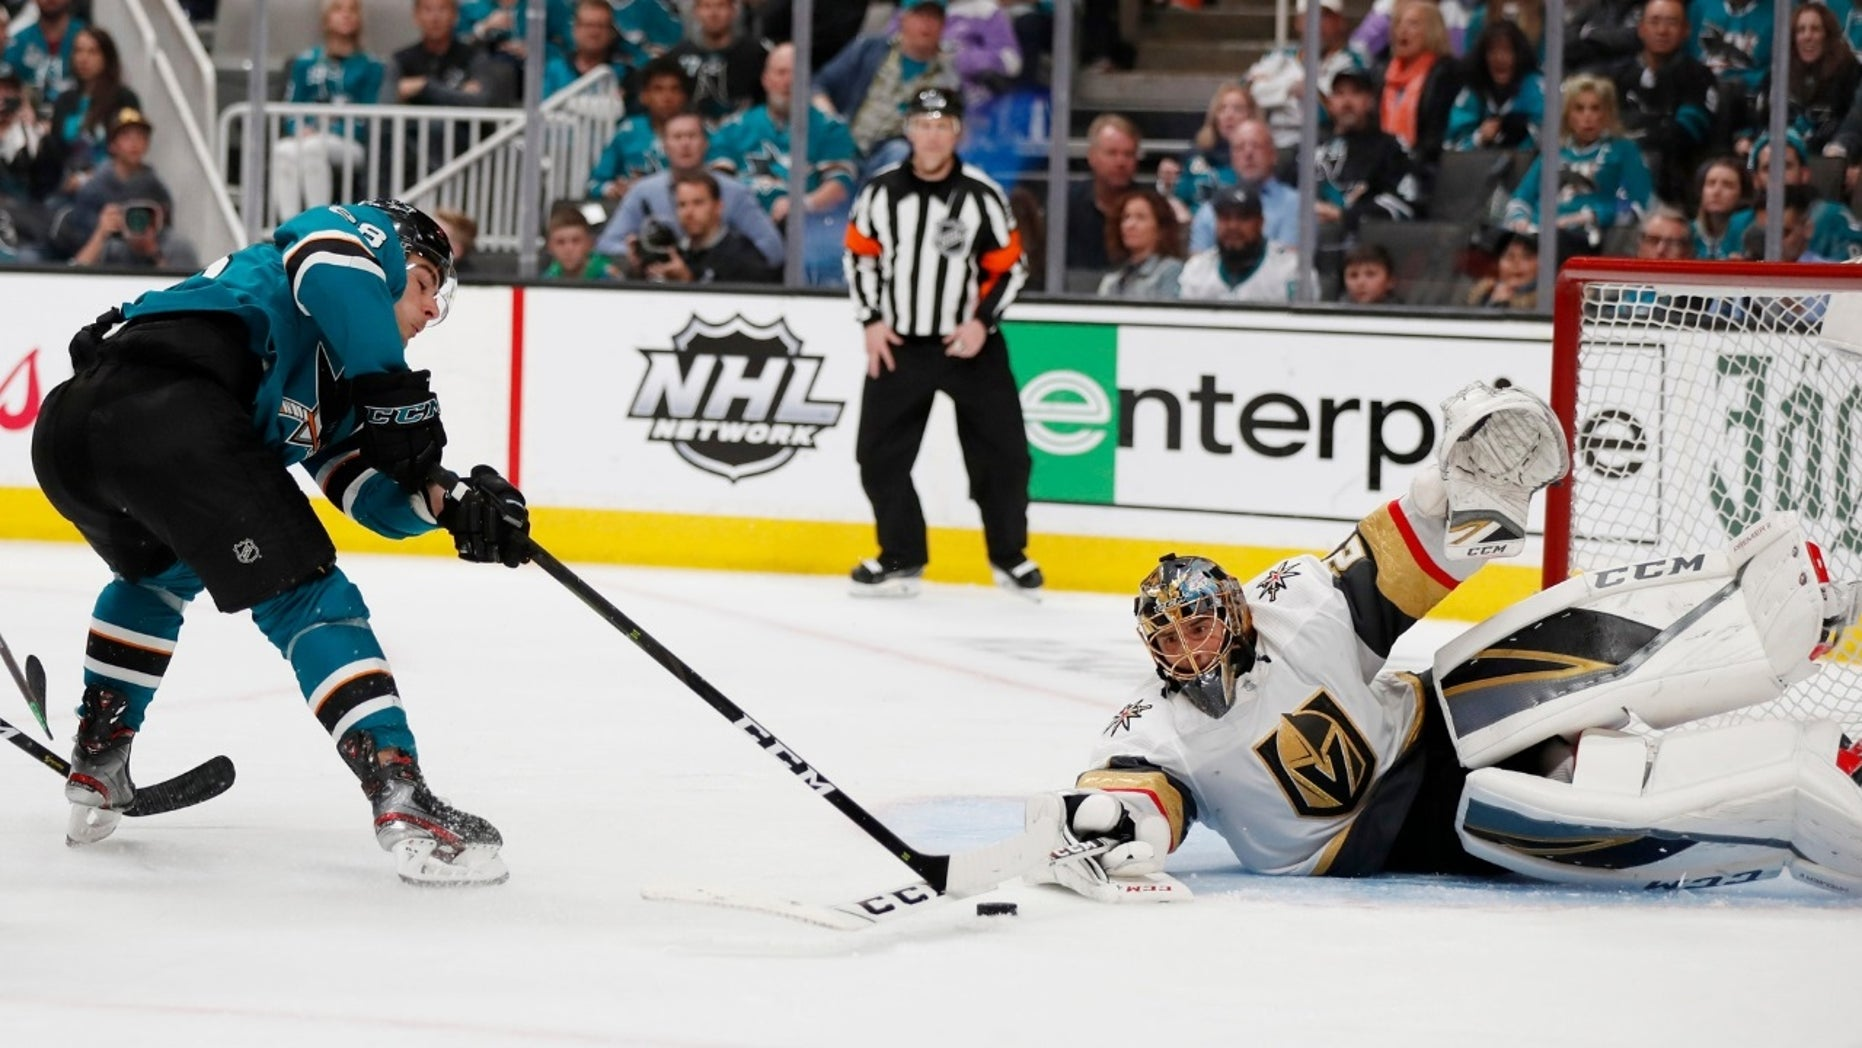 San Jose Sharks' Timo Meier, left, shots against Vegas Golden Knights goaltender Marc-Andre Fleury (29) during the third period of Game 2 of an NHL hockey first-round playoff series Friday, April 12, 2019, in San Jose, Calif.